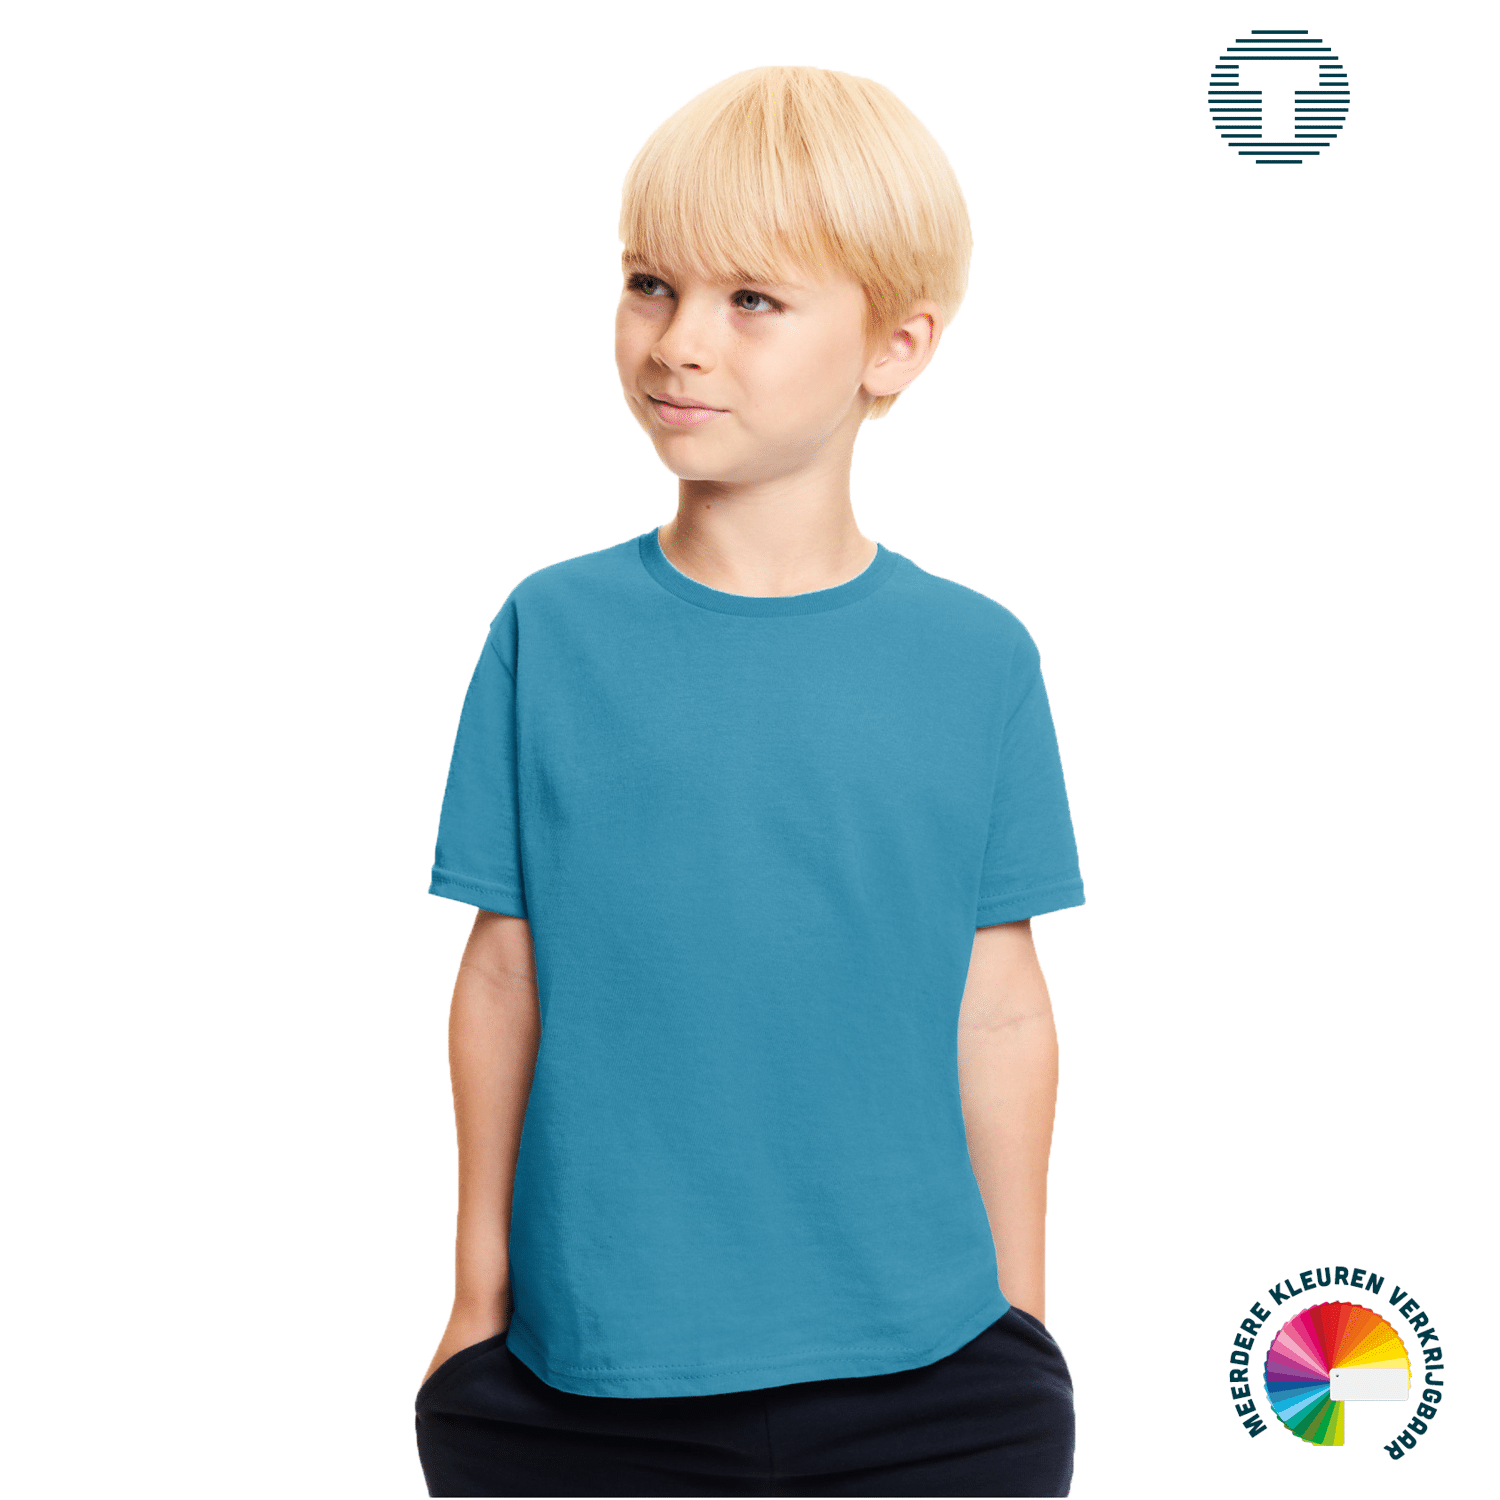 Regular kinder t-shirt Fruit of the Loom ontwerpen en bedrukken